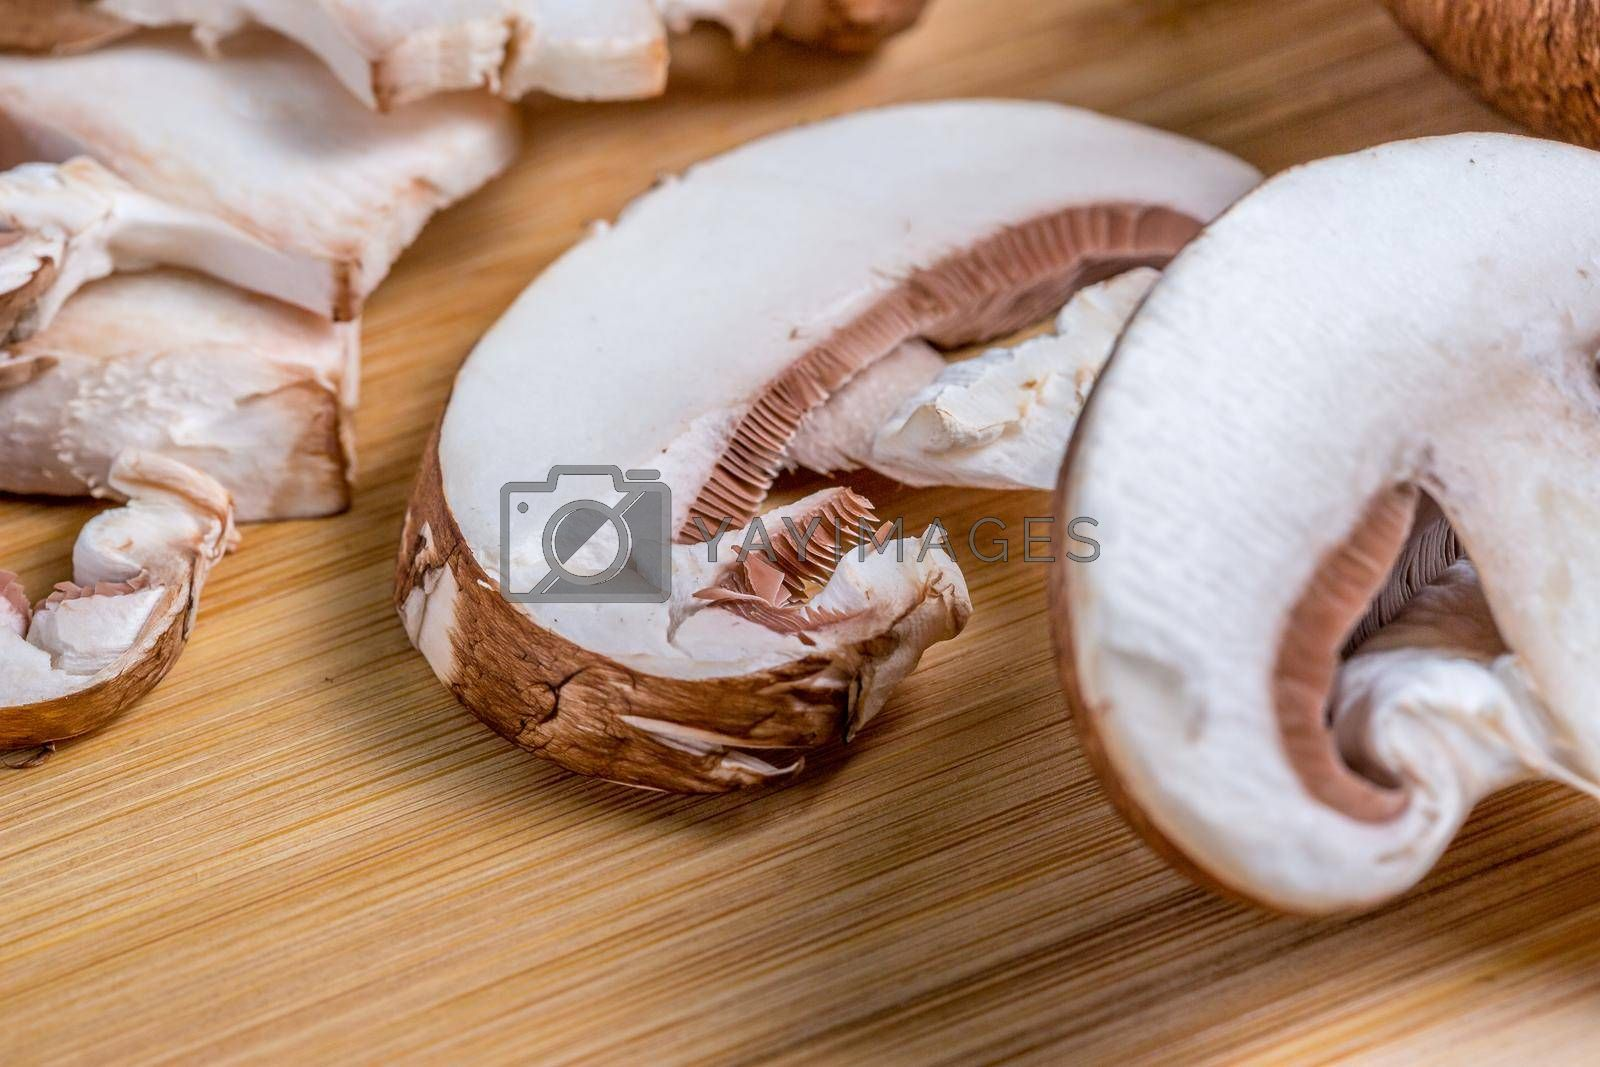 Royal champignons, Parisian champignons, chopped mushrooms on bamboo wooden chopping board, close-up. Dark wooden background. Side view.